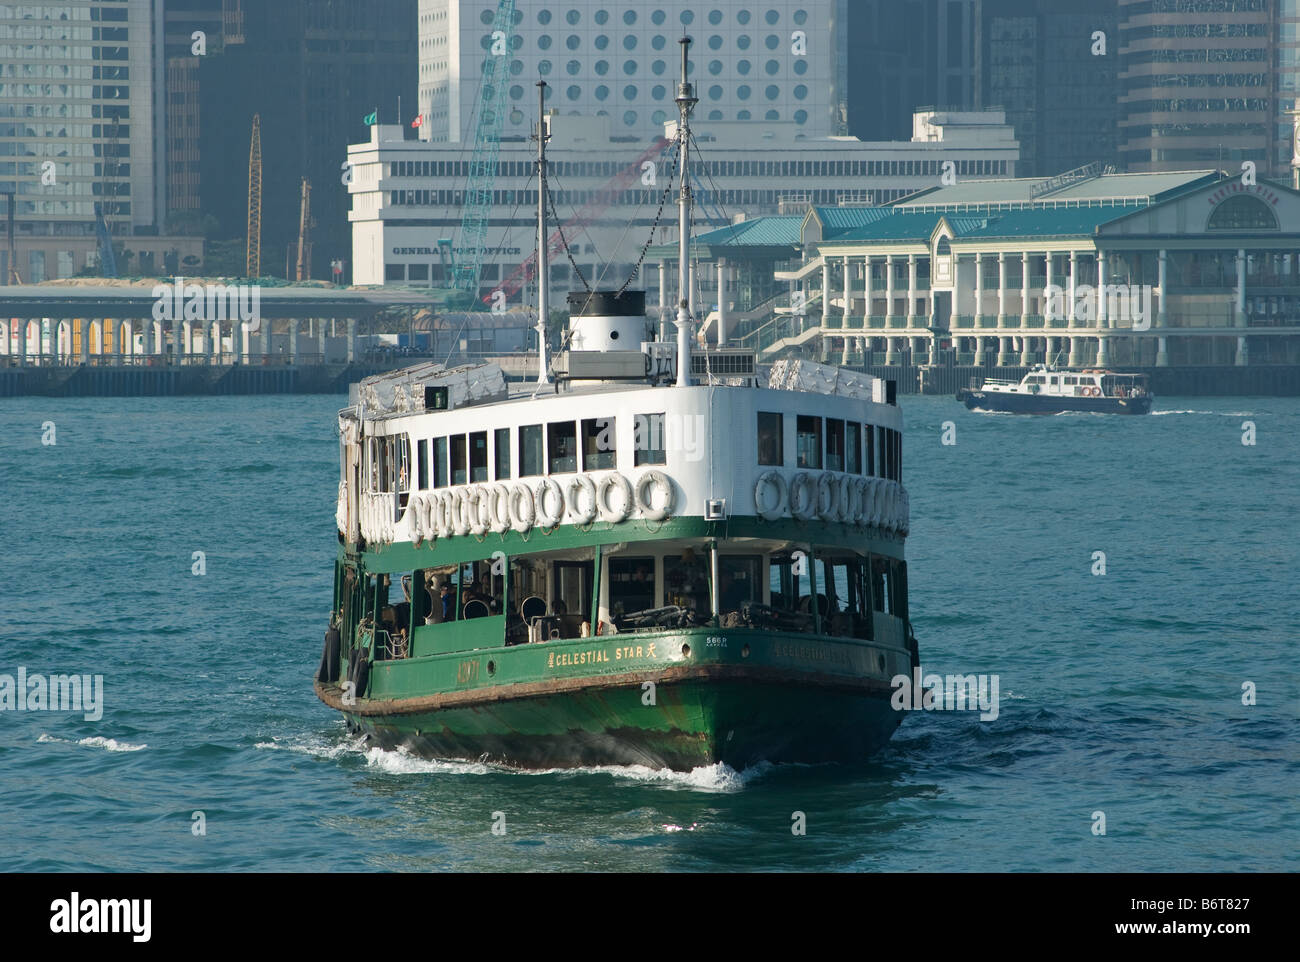 Star Ferry Celestial Star at Hong Kong harbour - Stock Image